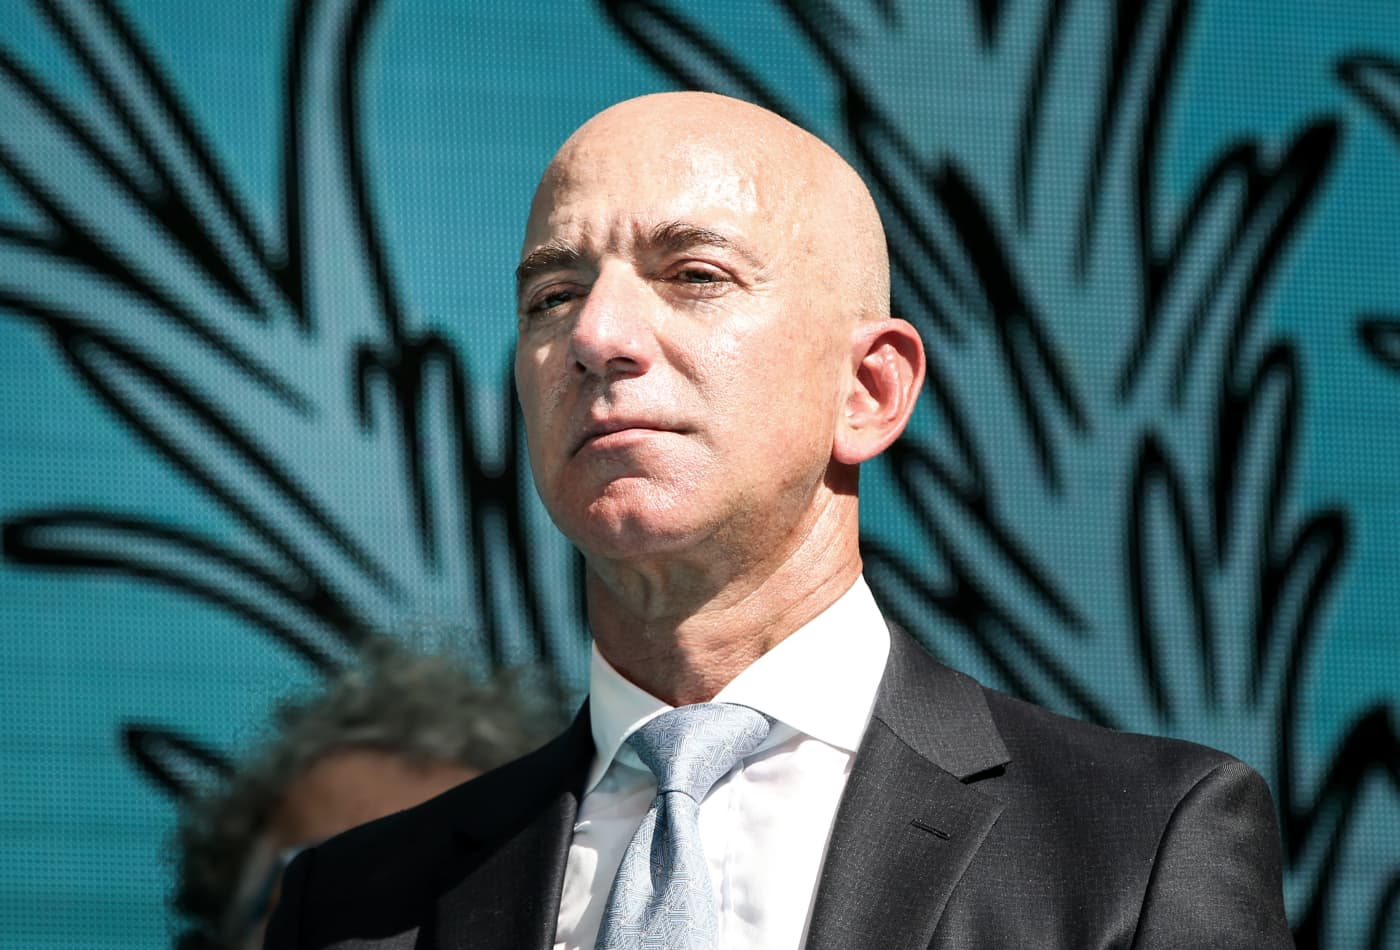 Jeff Bezos would owe $2 billion a year in state taxes if Washington passes wealth tax